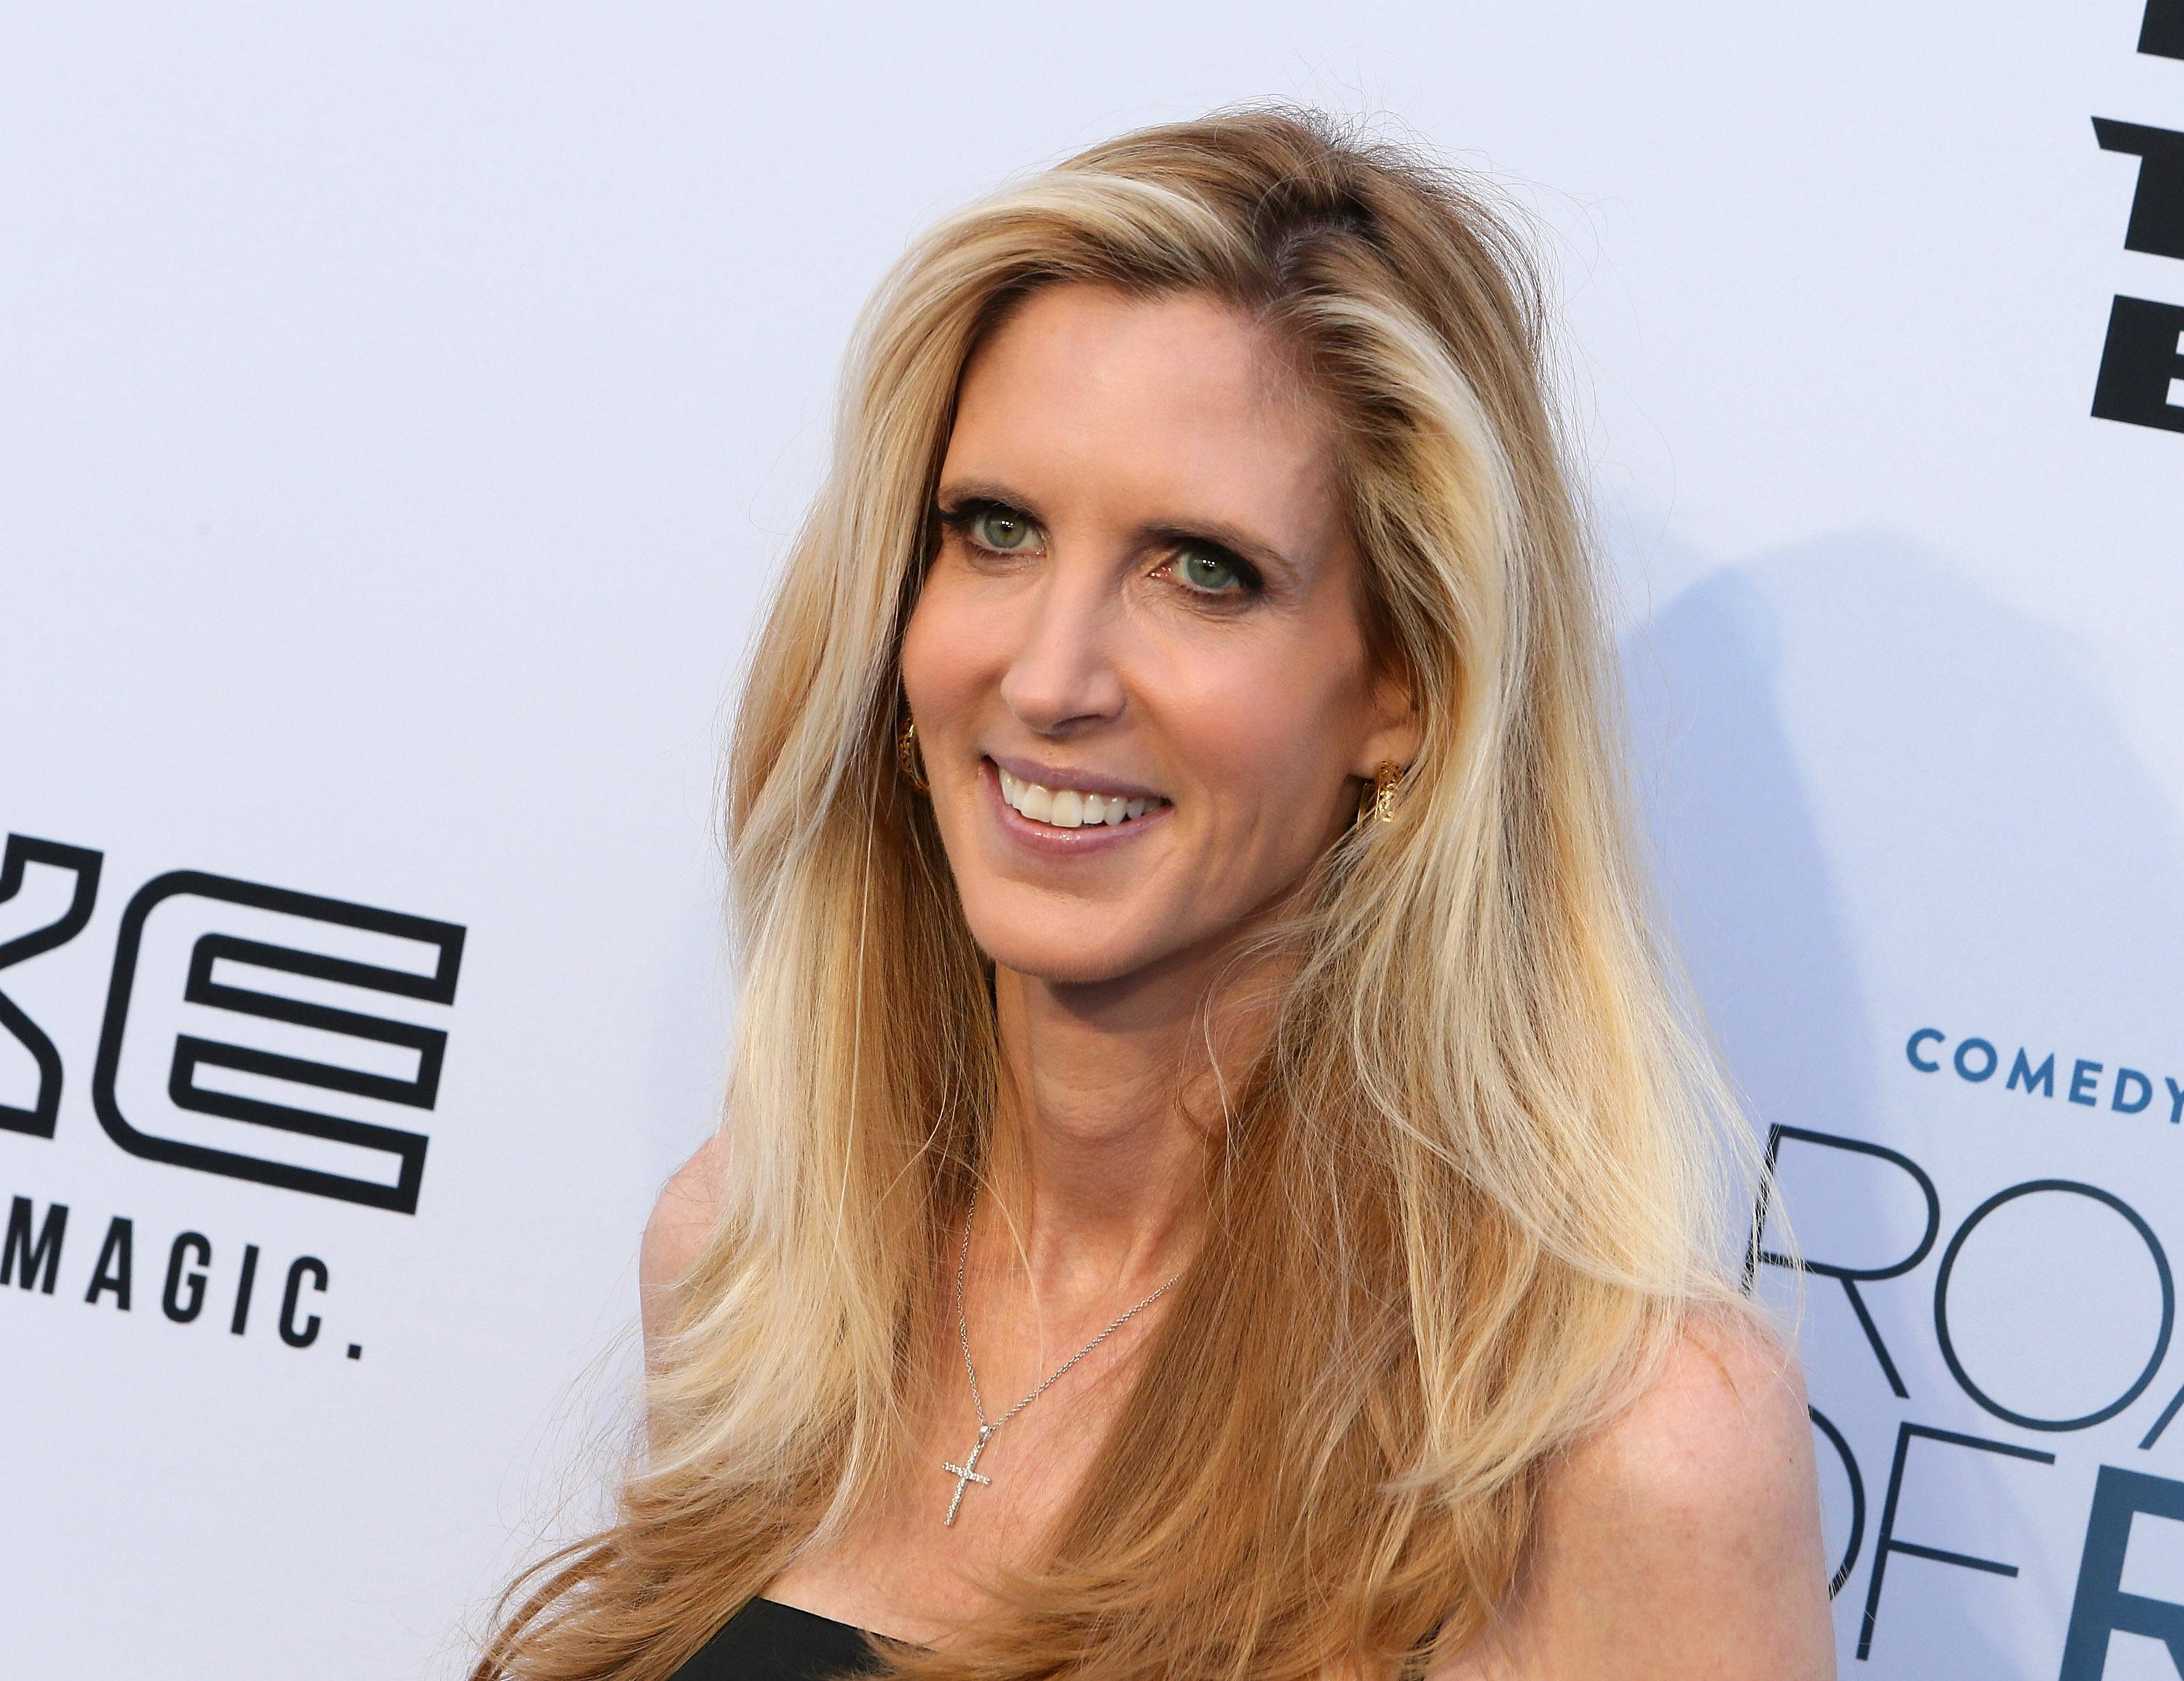 Ann Coulter is the Legal Affairs Correspondent for Human Events and author of High Crimes and Misdemeanors Slander Treason How to Talk to a Liberal If You Must